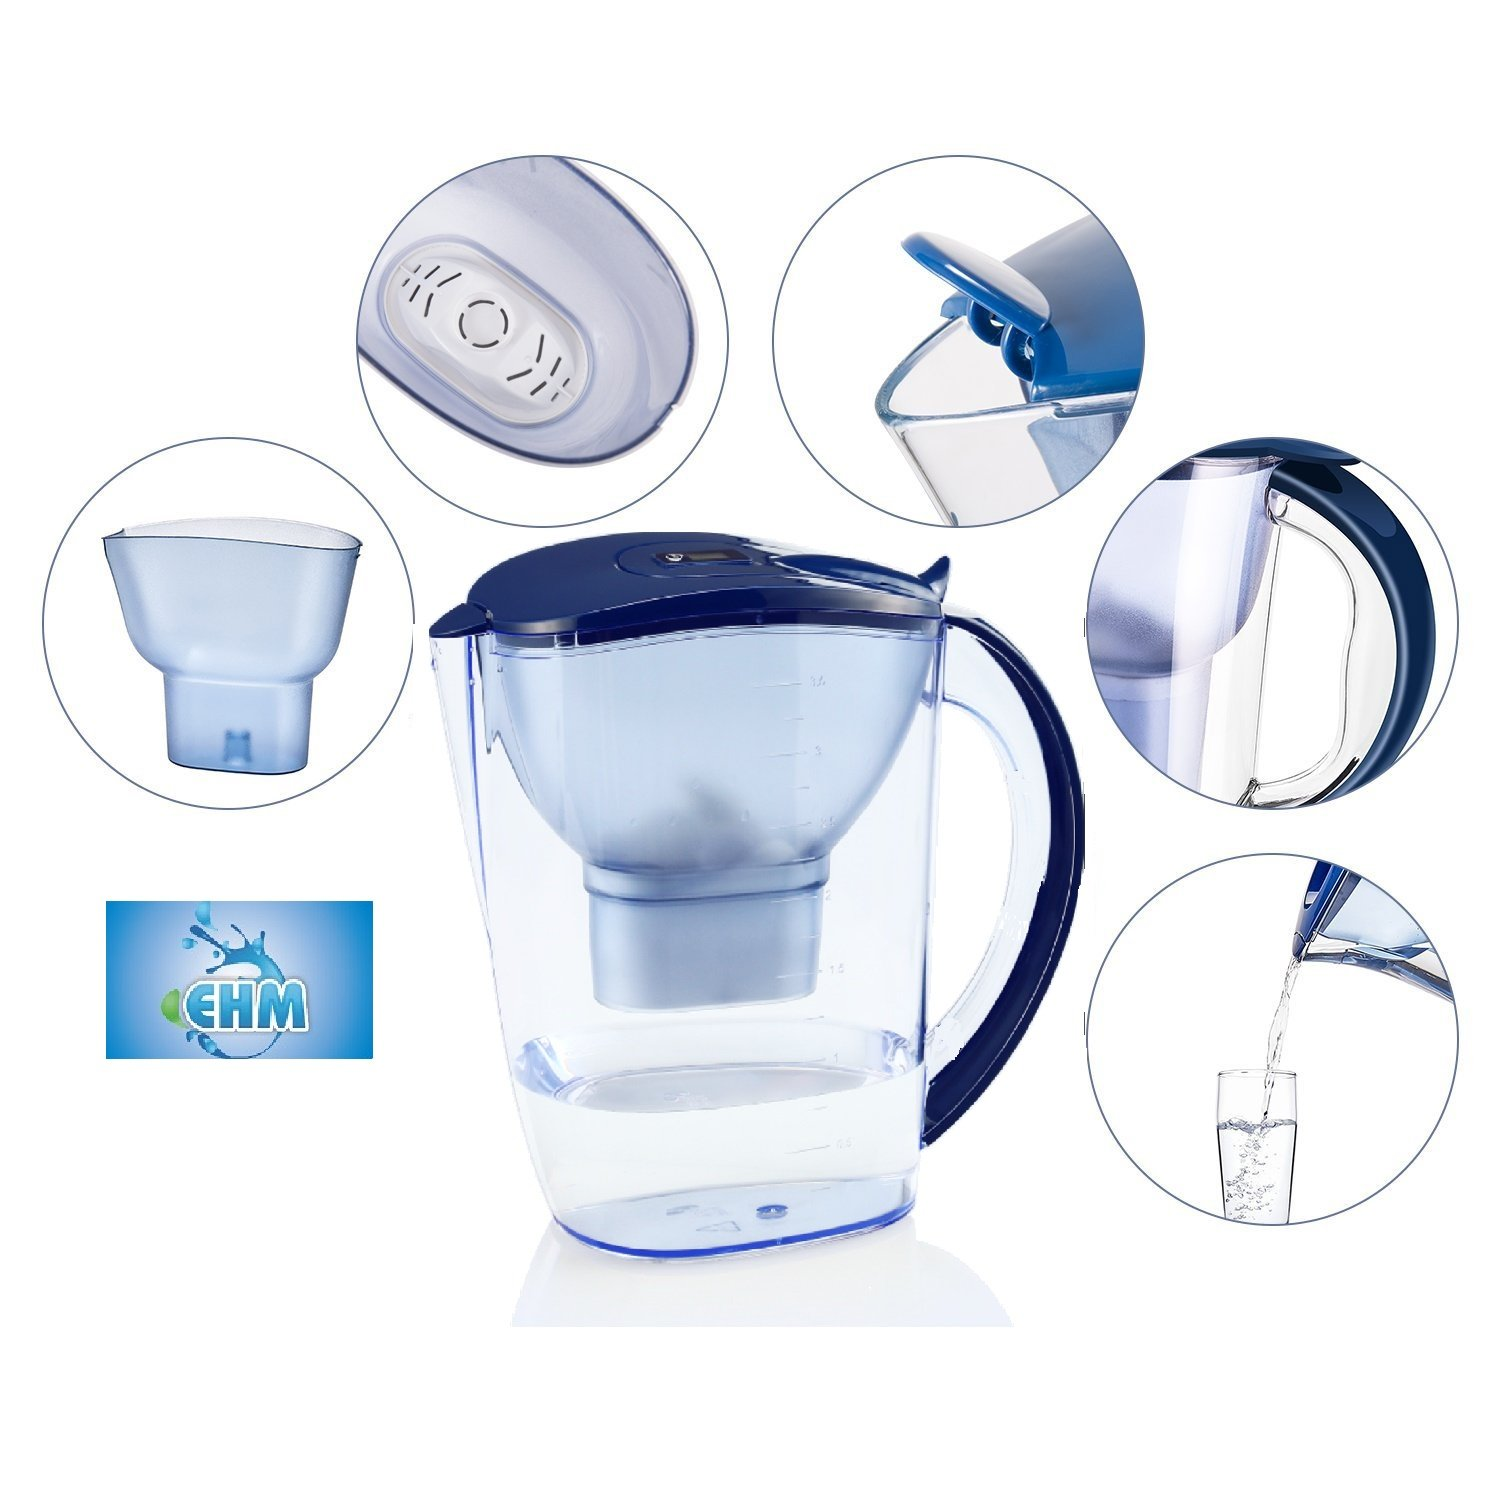 EHM ULTRA Premium Alkaline Water Pitcher - 3.5L Pure Healthy Water Ionizer With Activated Carbon Filter - Healthy, Clean & Toxin-Free Mineralized Alkaline Water In Minutes - PH 8.5 - 9.5 - 2018 by EHM (Image #7)